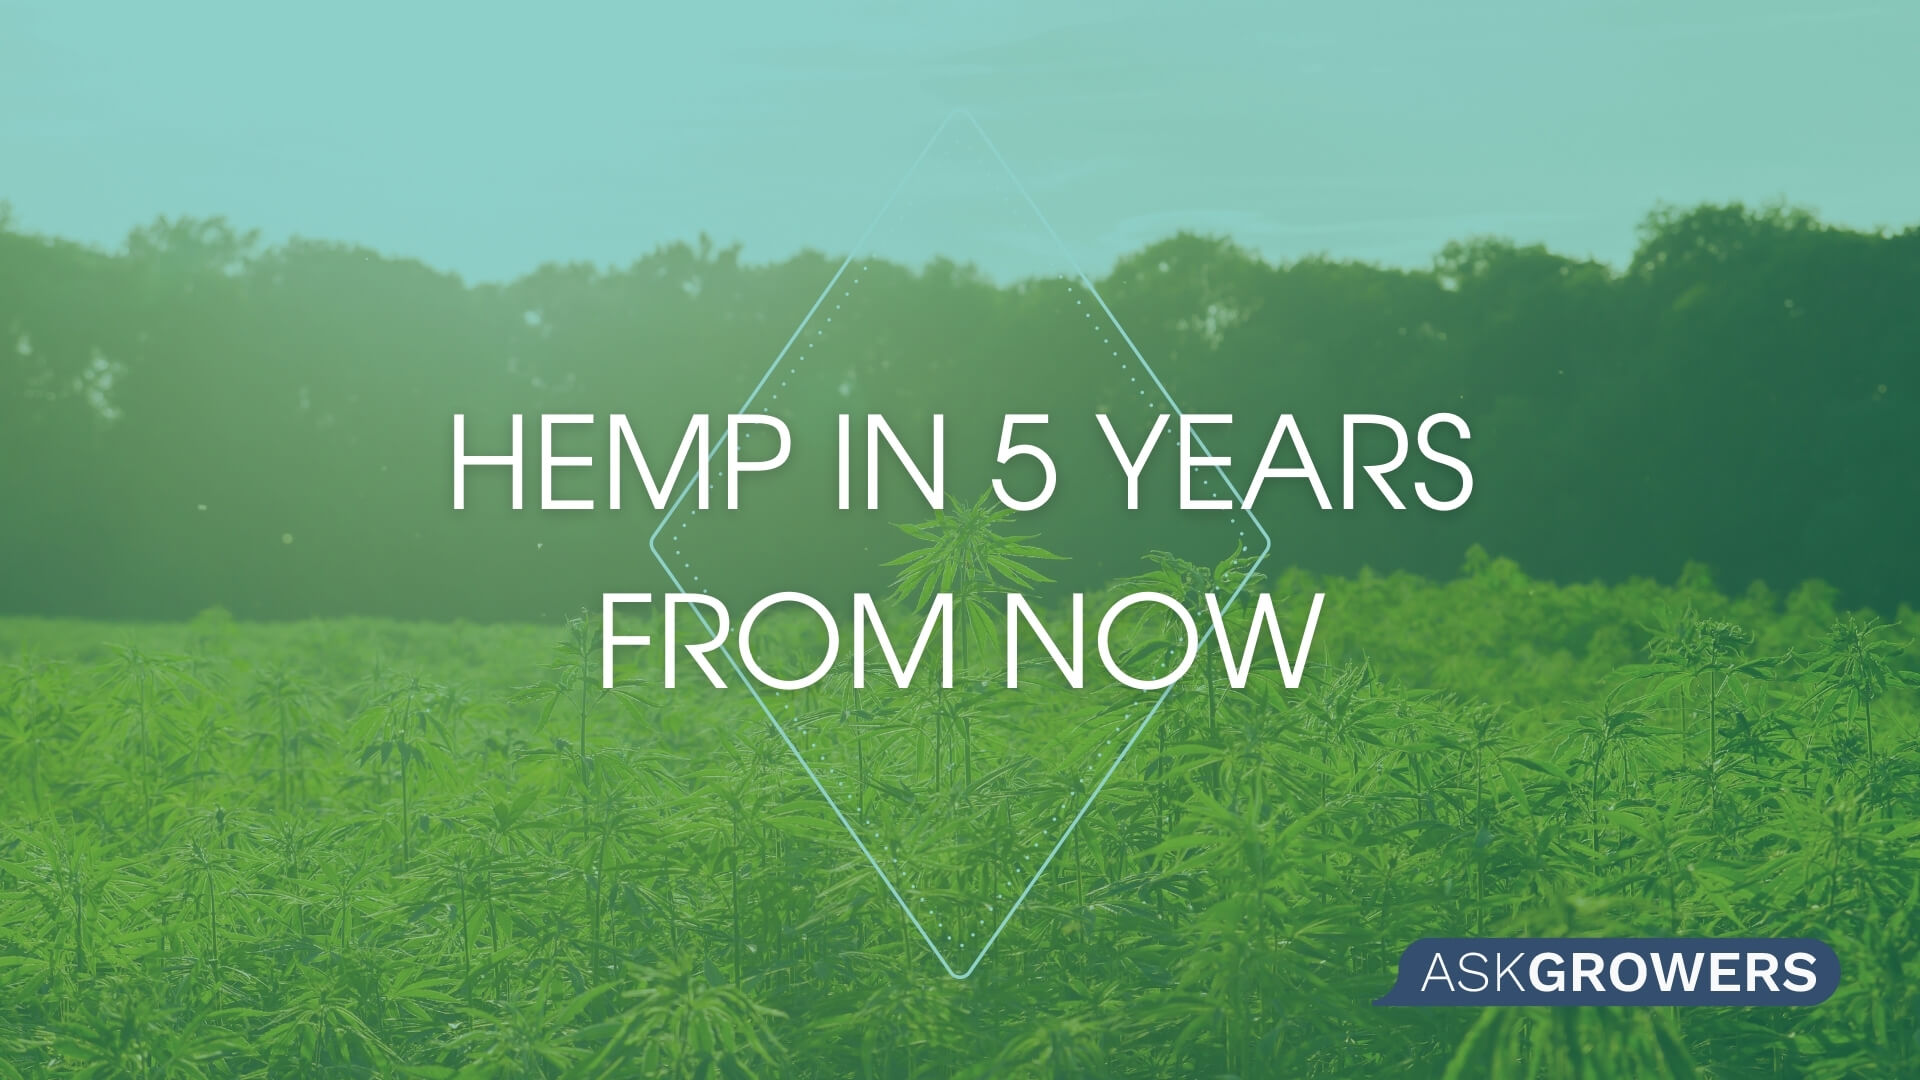 Hemp in 5 Years From Now, AskGrowers